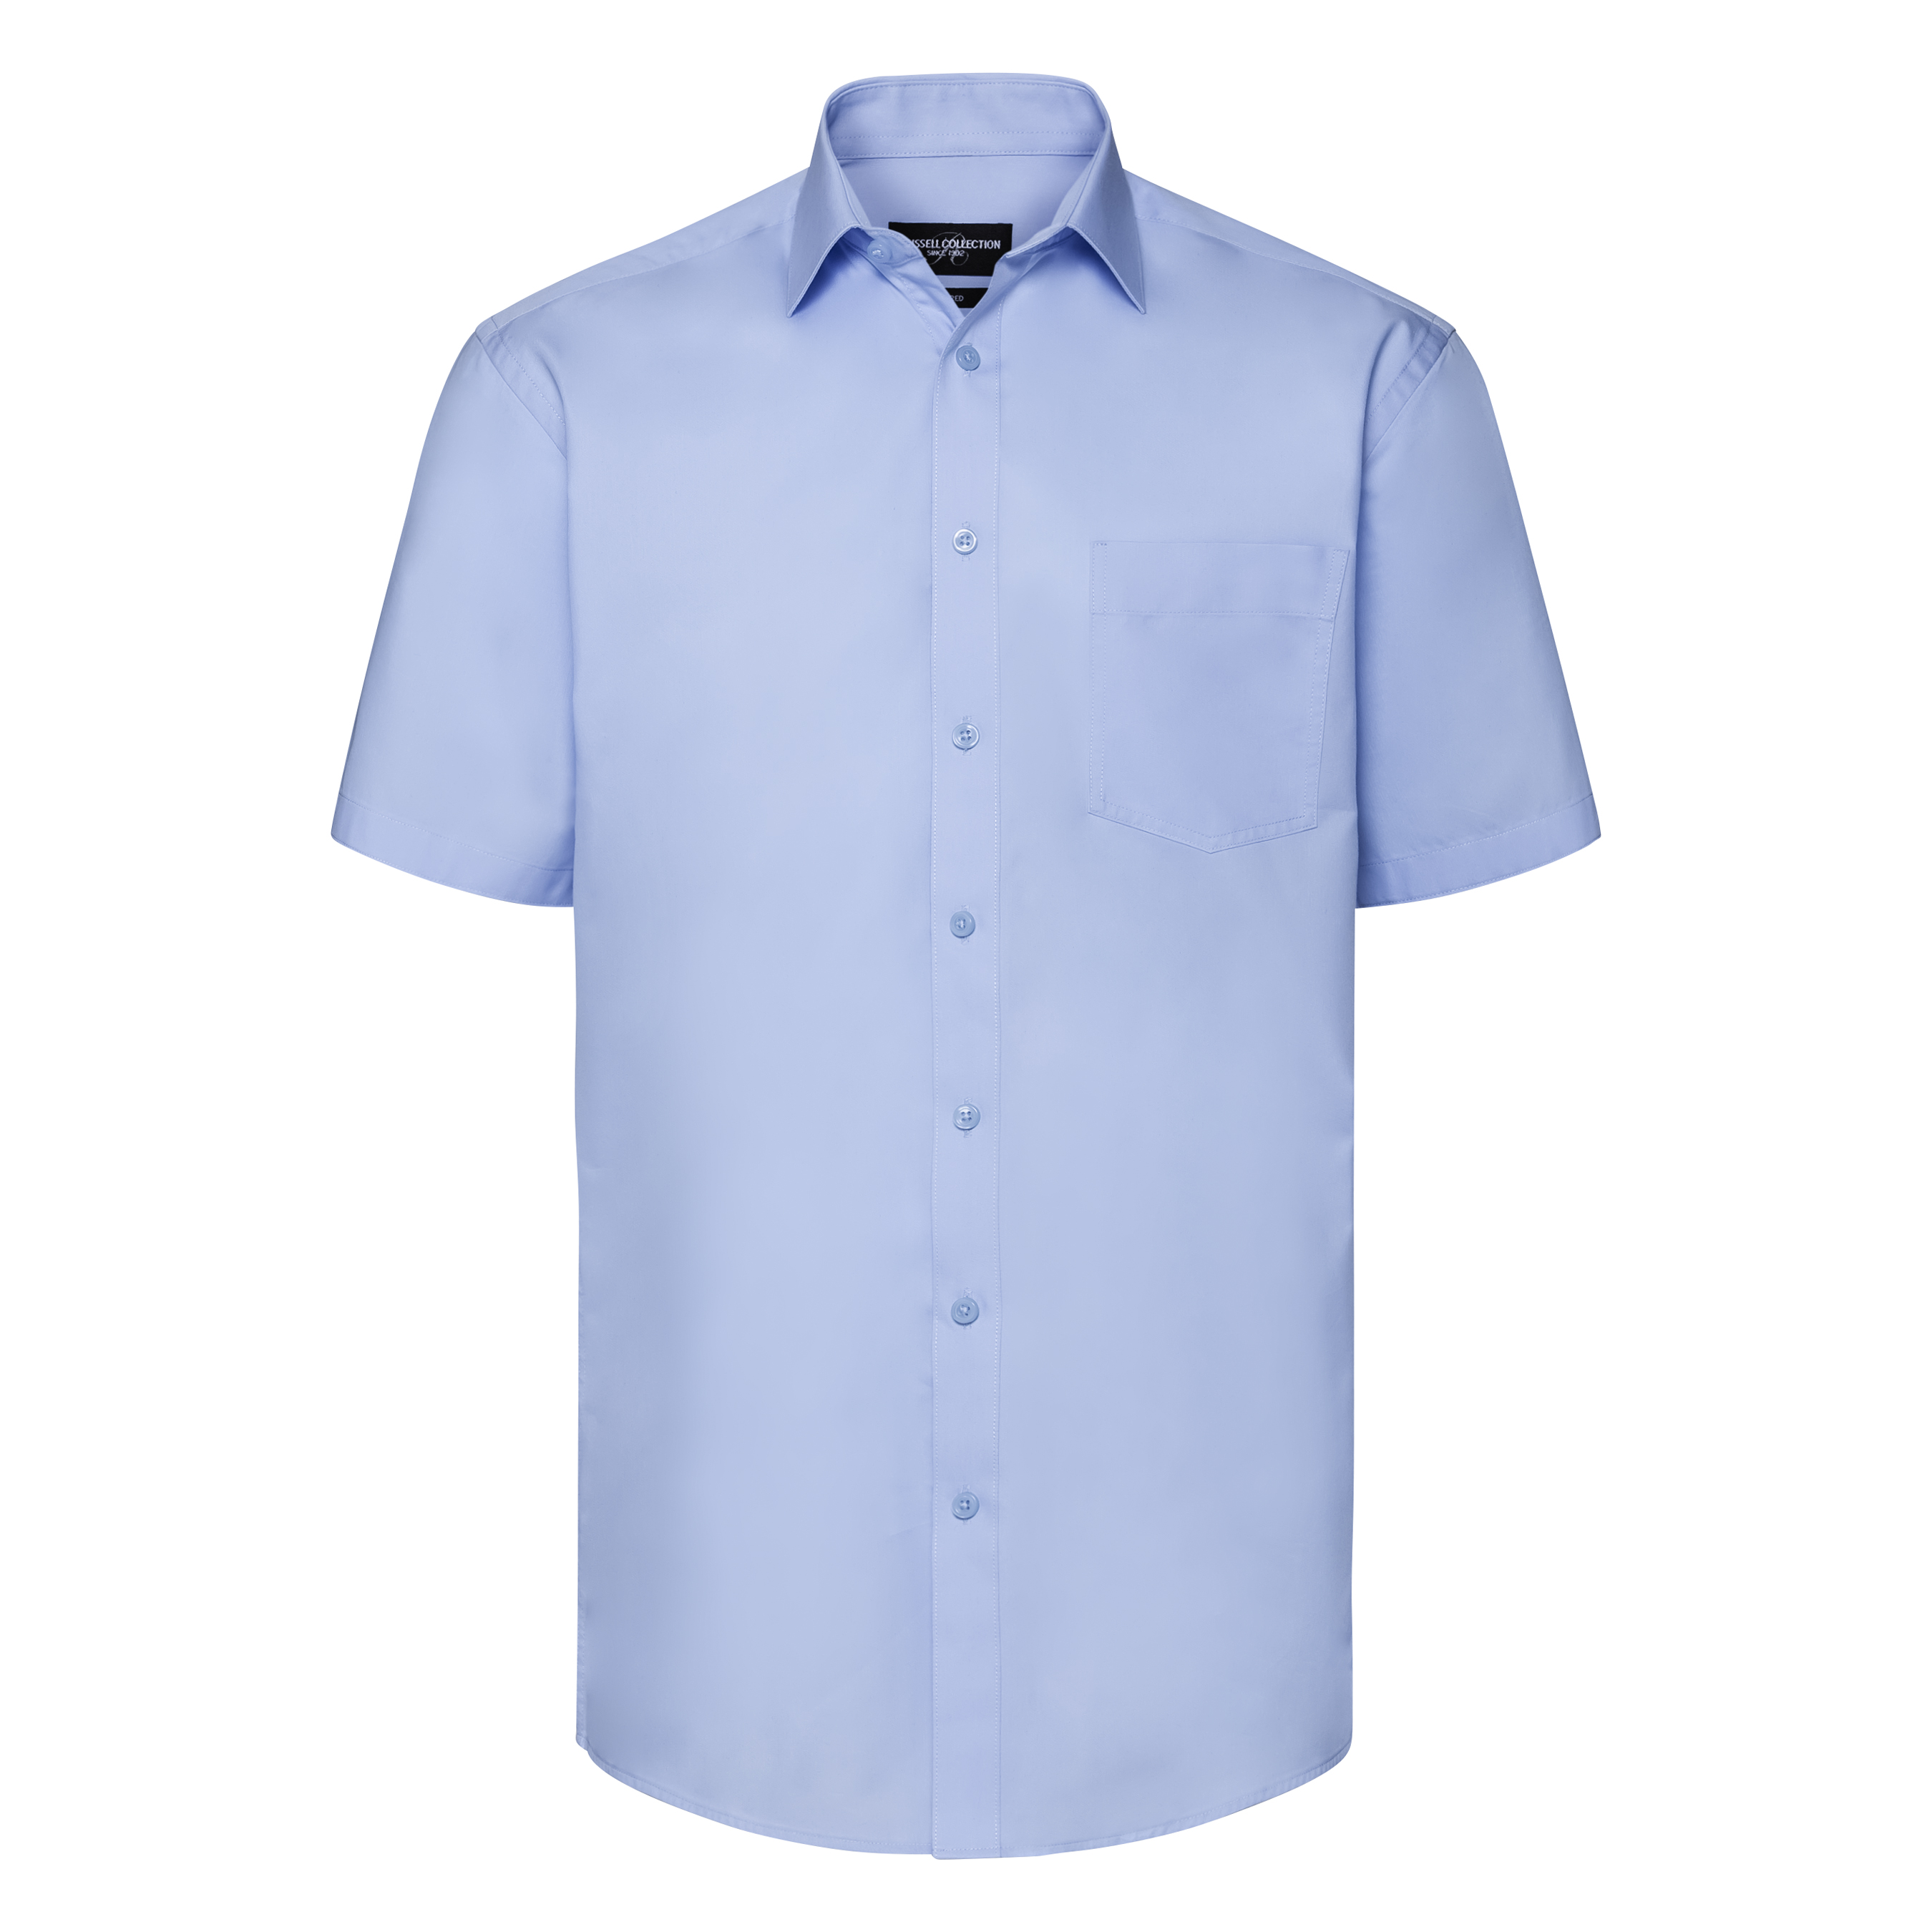 Russell Collection Mens Short Sleeve Tailored Coolmax Shirt (M) (Light Blue)